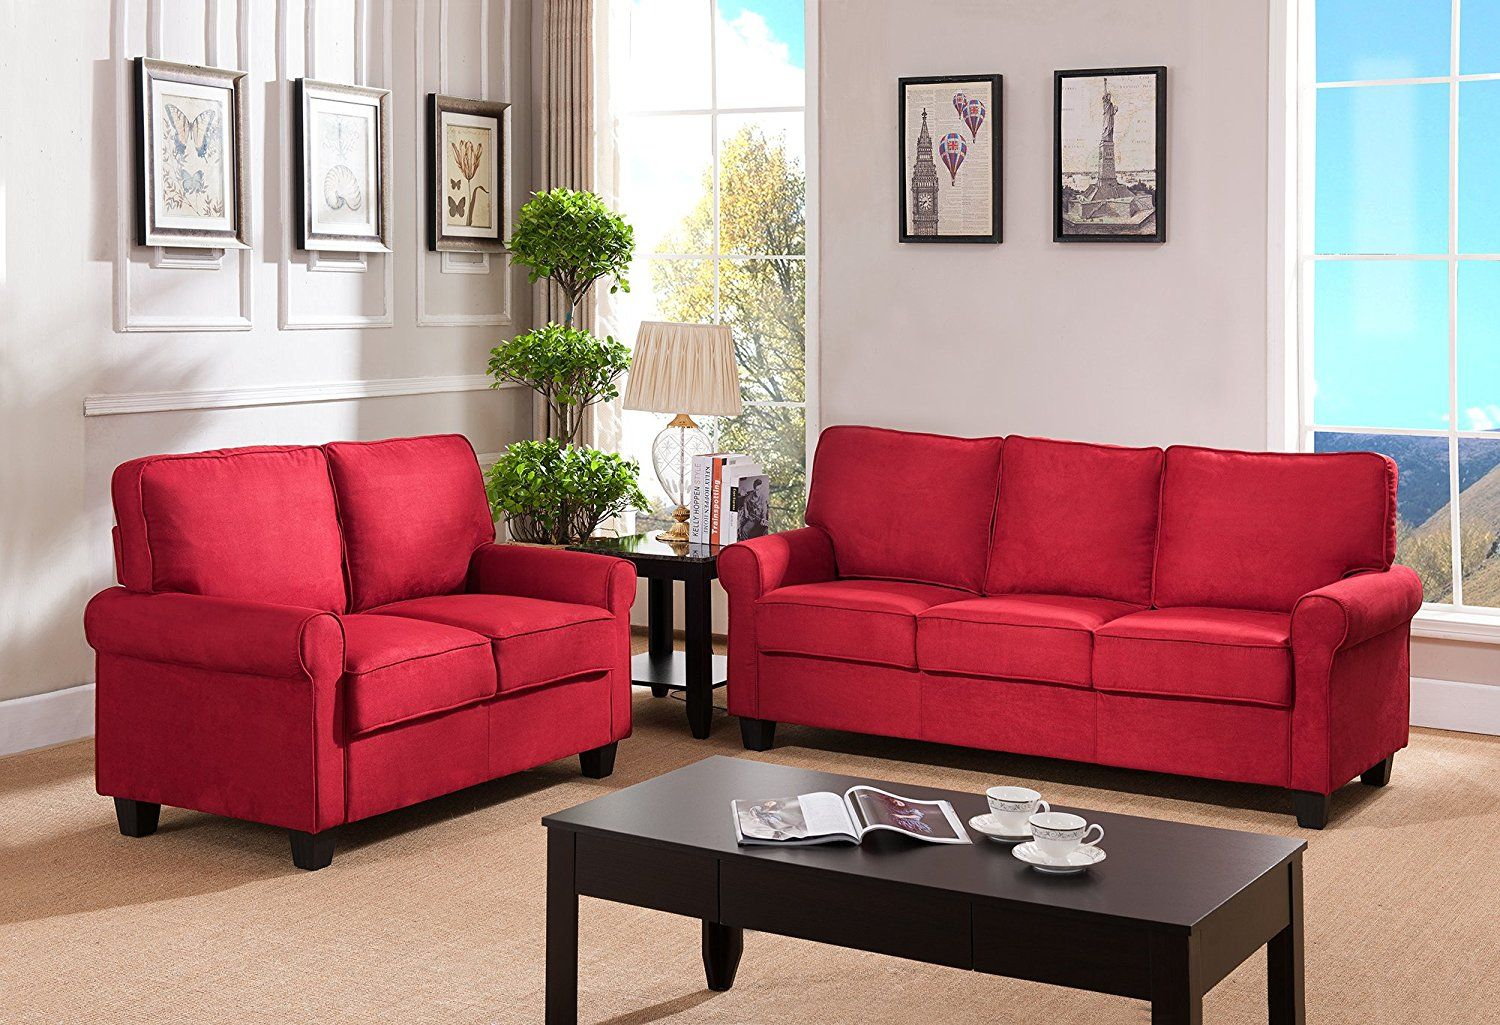 Living Room Designs Ideas With Red Sofa Kings Brand Furniture